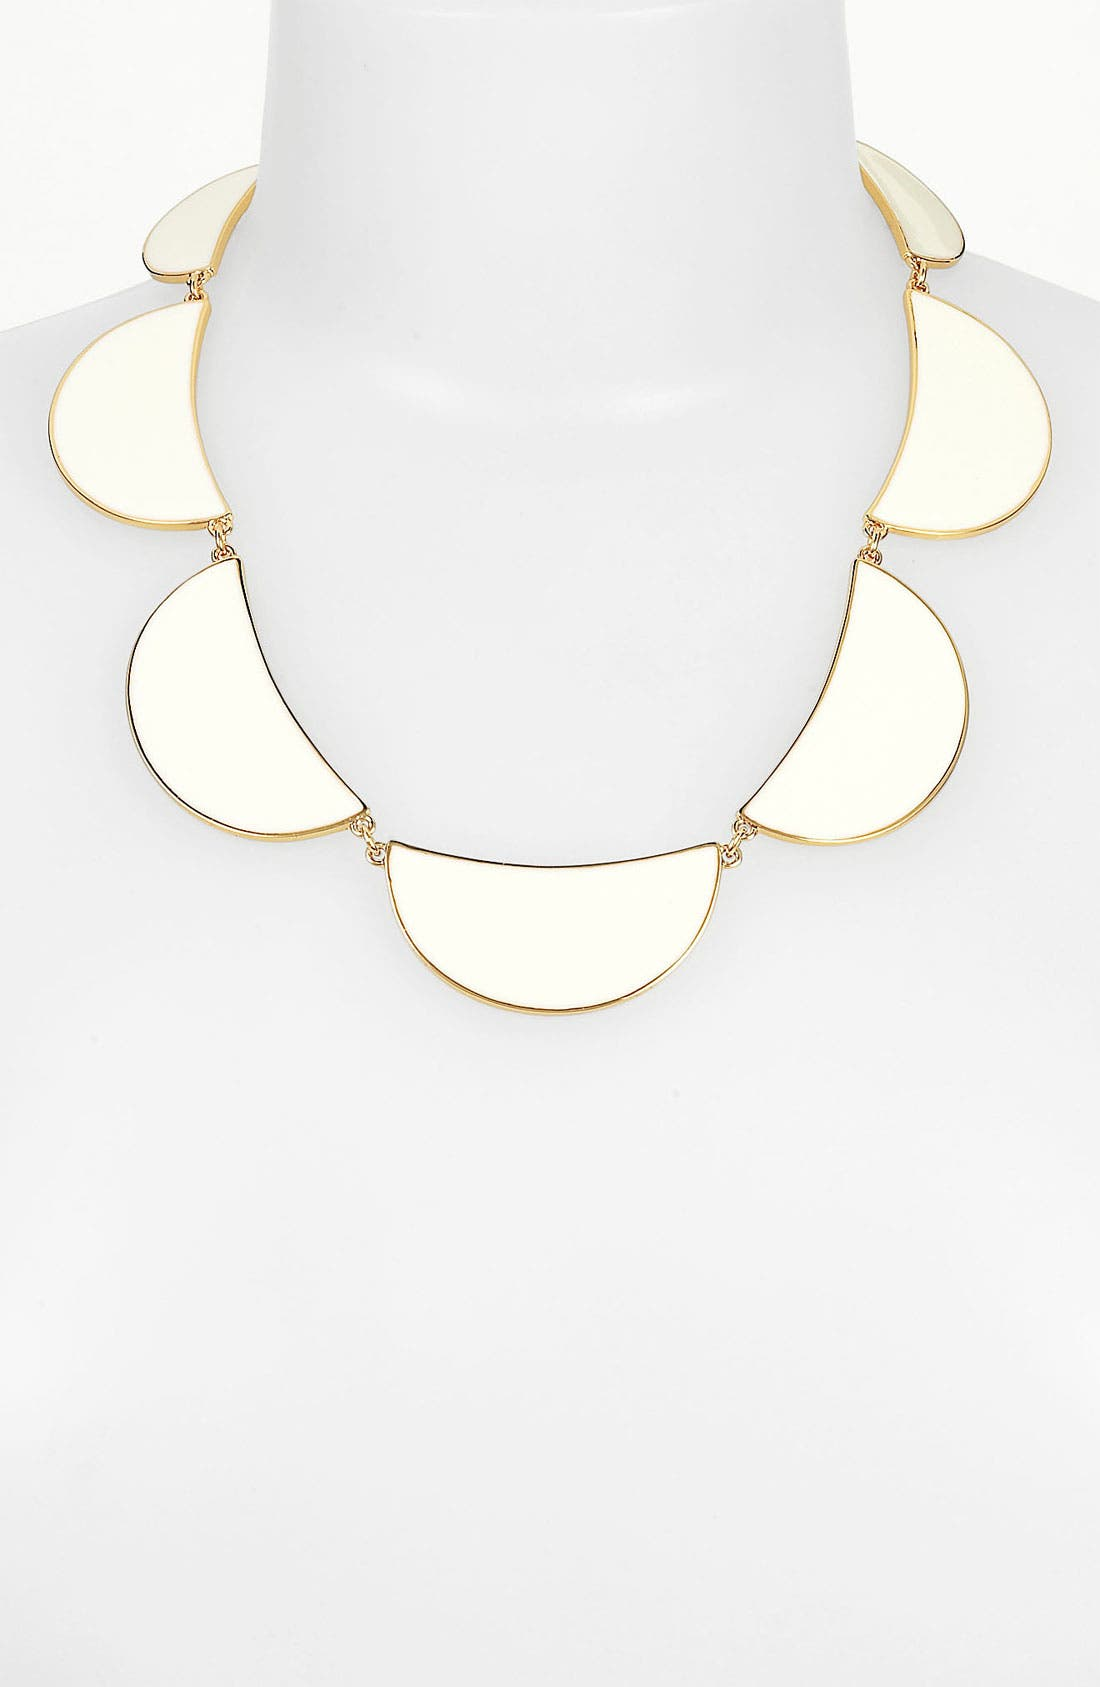 Alternate Image 1 Selected - kate spade new york 'scallop' frontal necklace